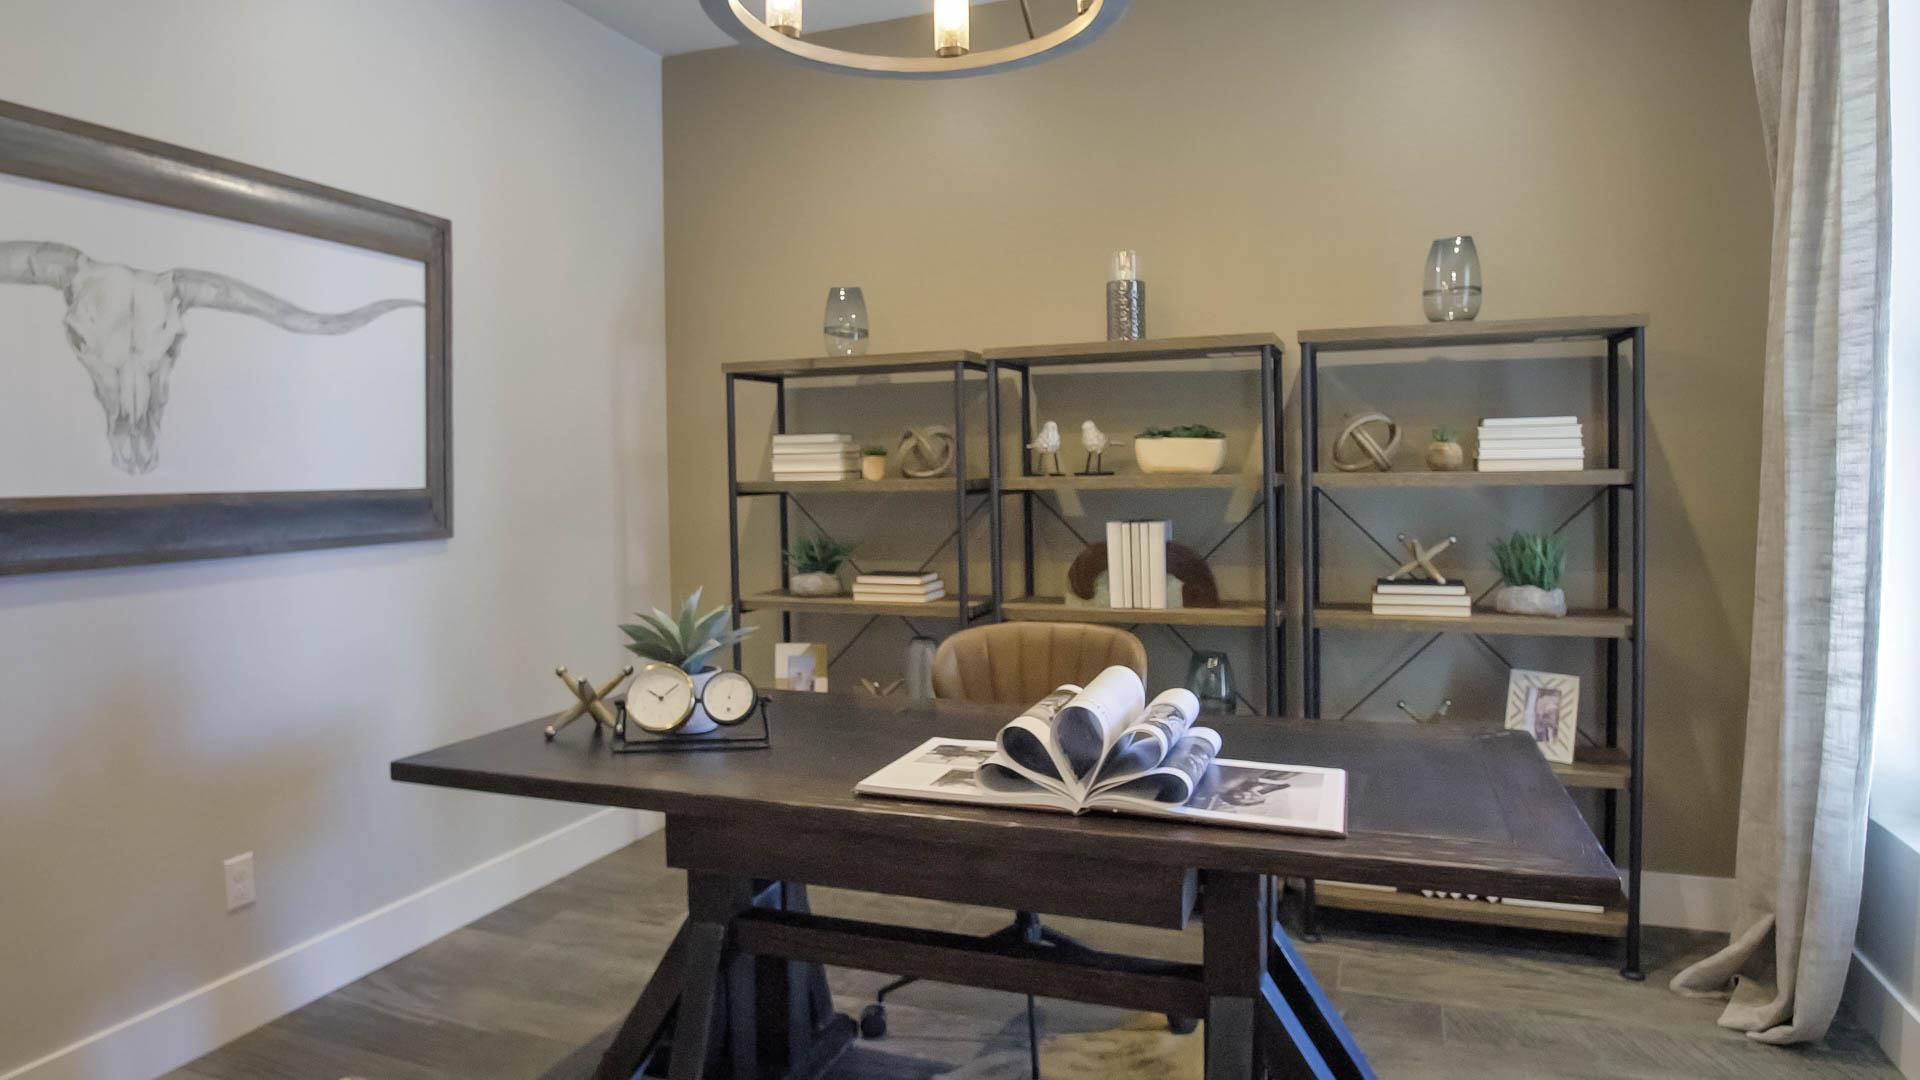 Living Area featured in the J605 By Mandalay Homes in Prescott, AZ